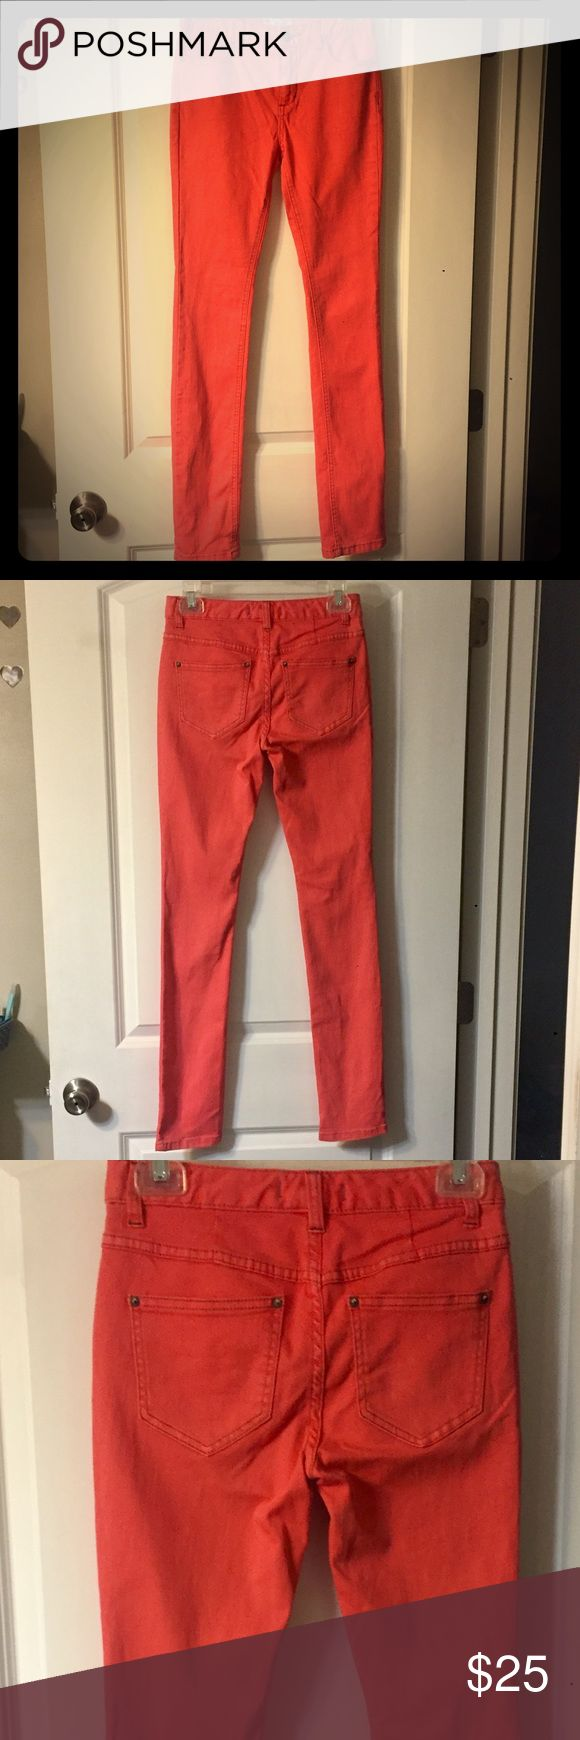 Free People Coral Skinny Jeans sz 25, hardly worn! Free People Skinny Jeans size 25- awesome bright coral color and in like new condition since these were hardly worn! Free People Jeans Skinny